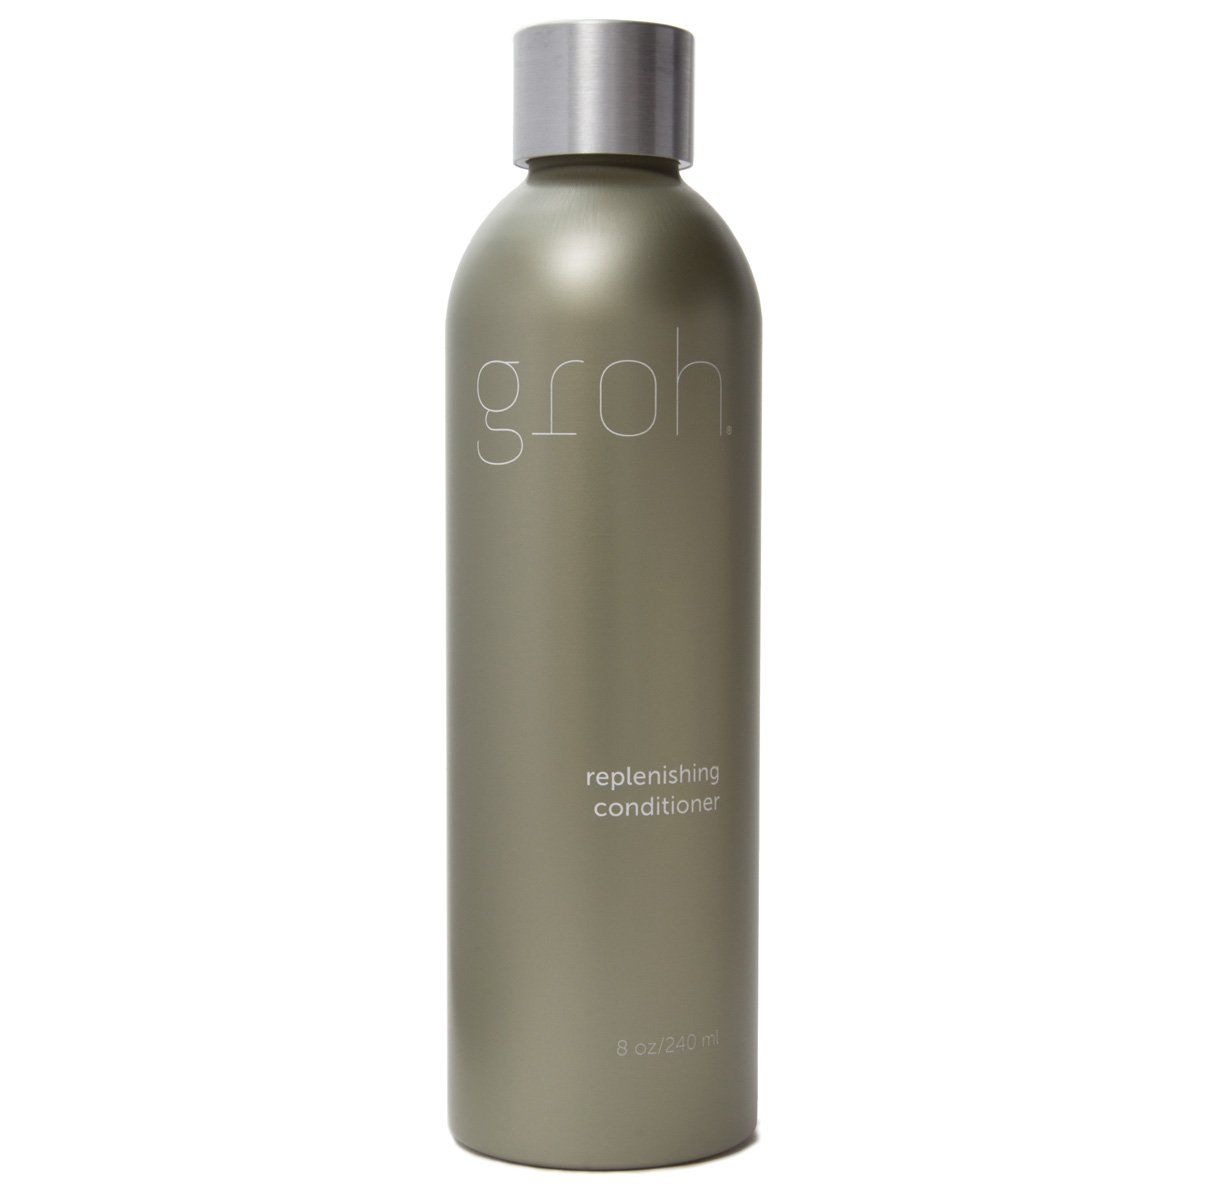 Groh Replenishing Conditioner, 8 oz. by GROH®